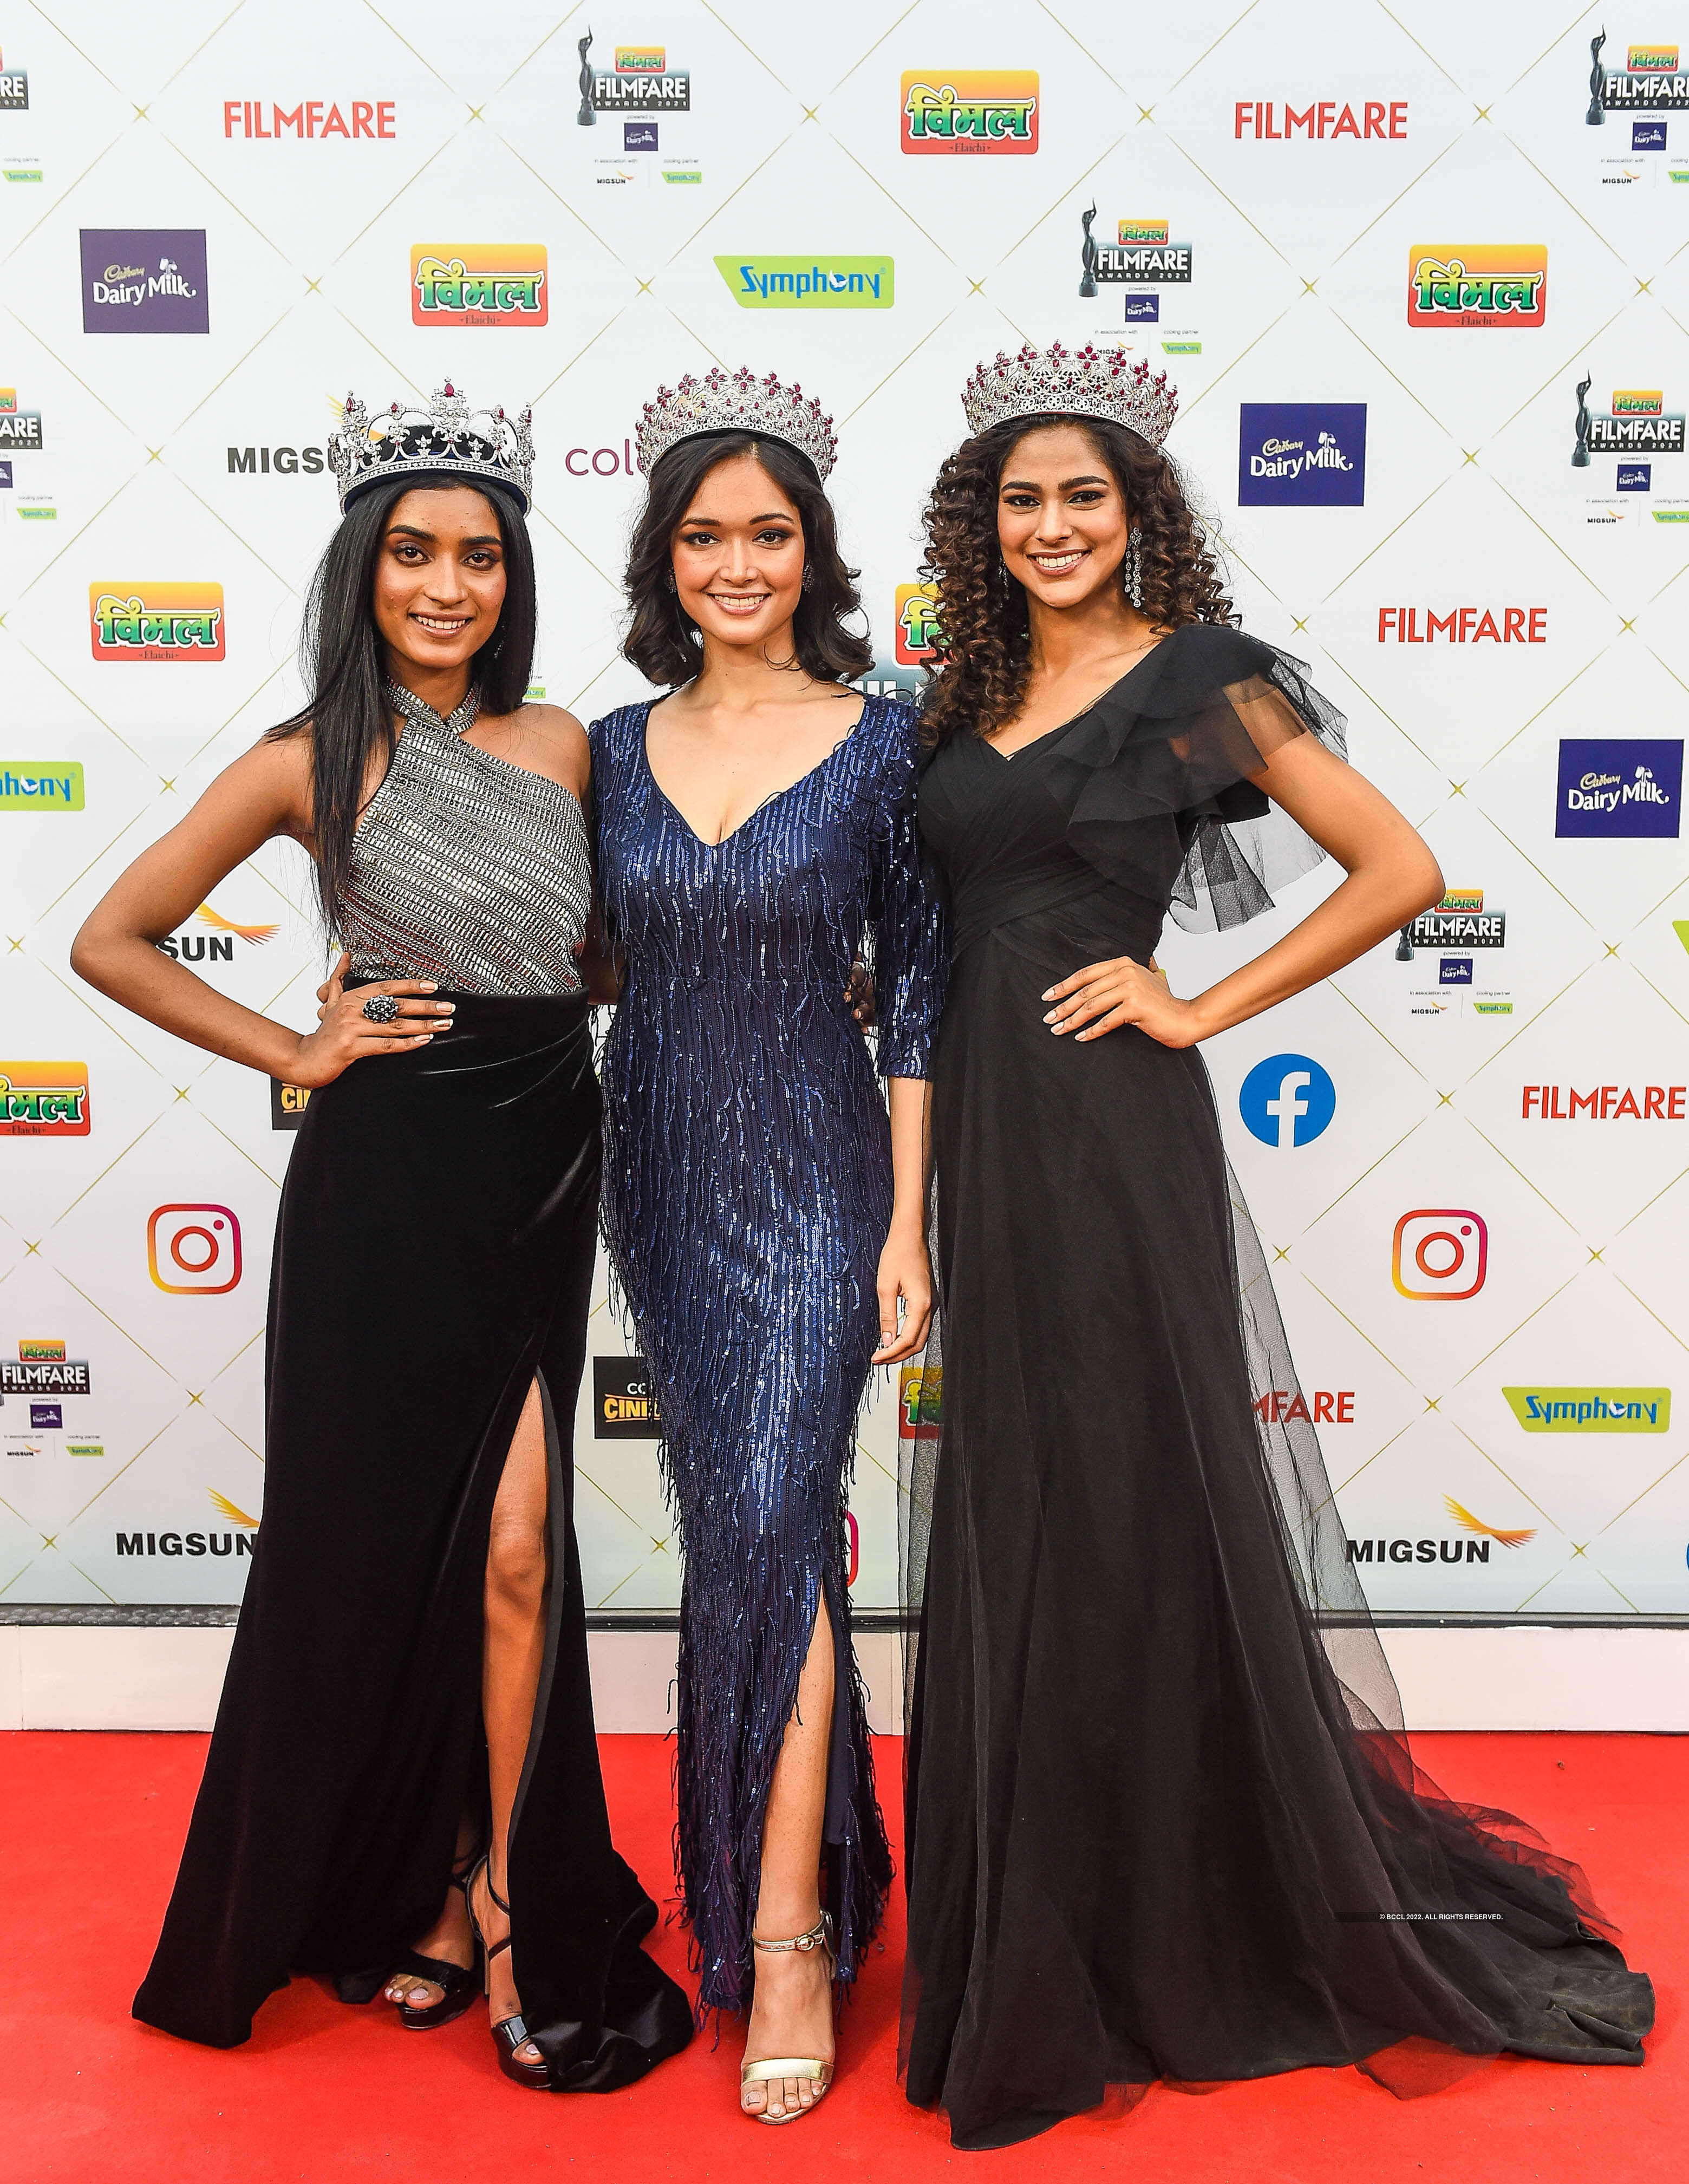 Miss India and Miss Diva queens dazzle at the 66th Filmfare awards!